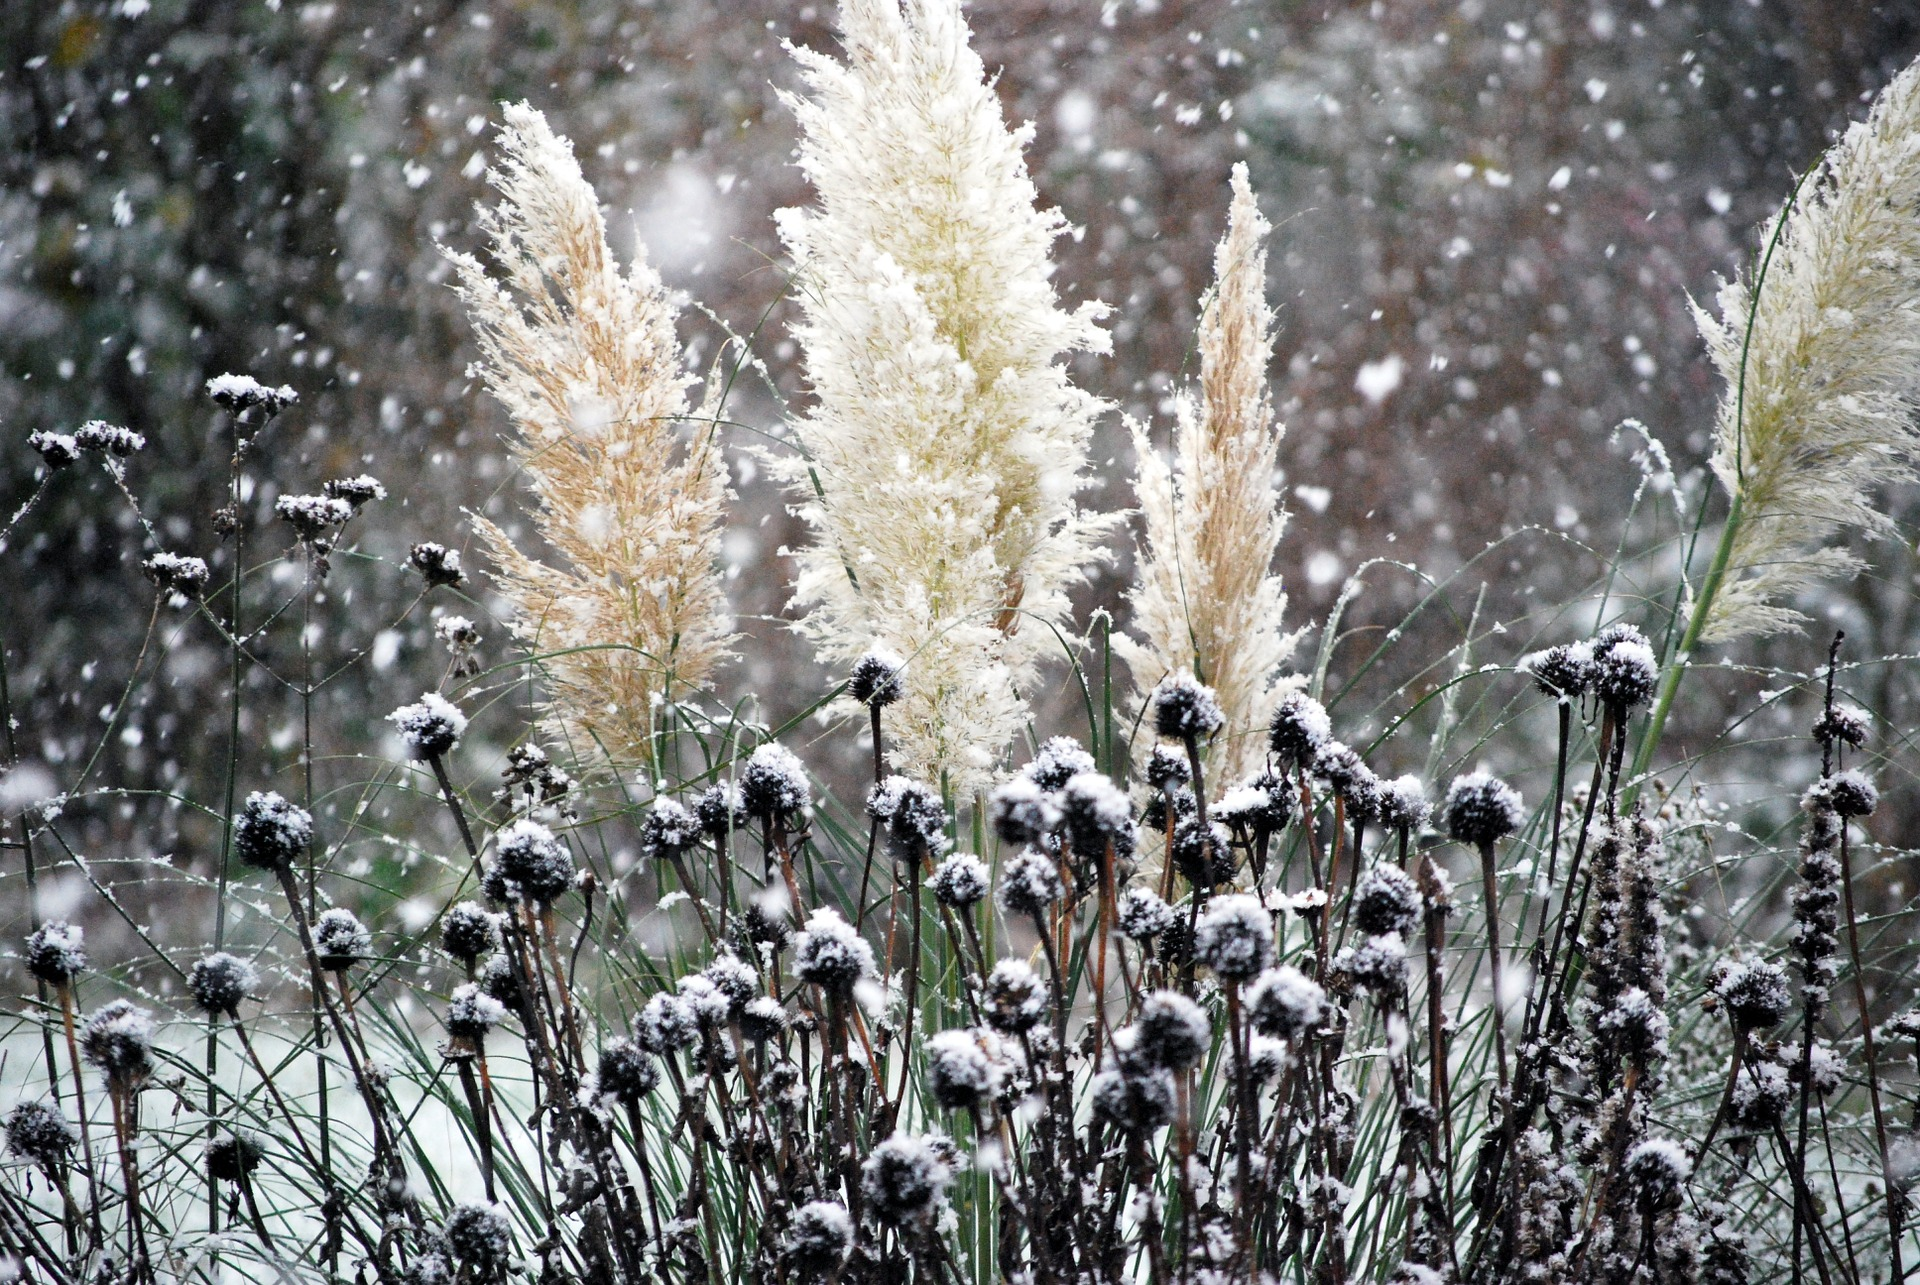 Seed pods and flower heads create a striking winter display.